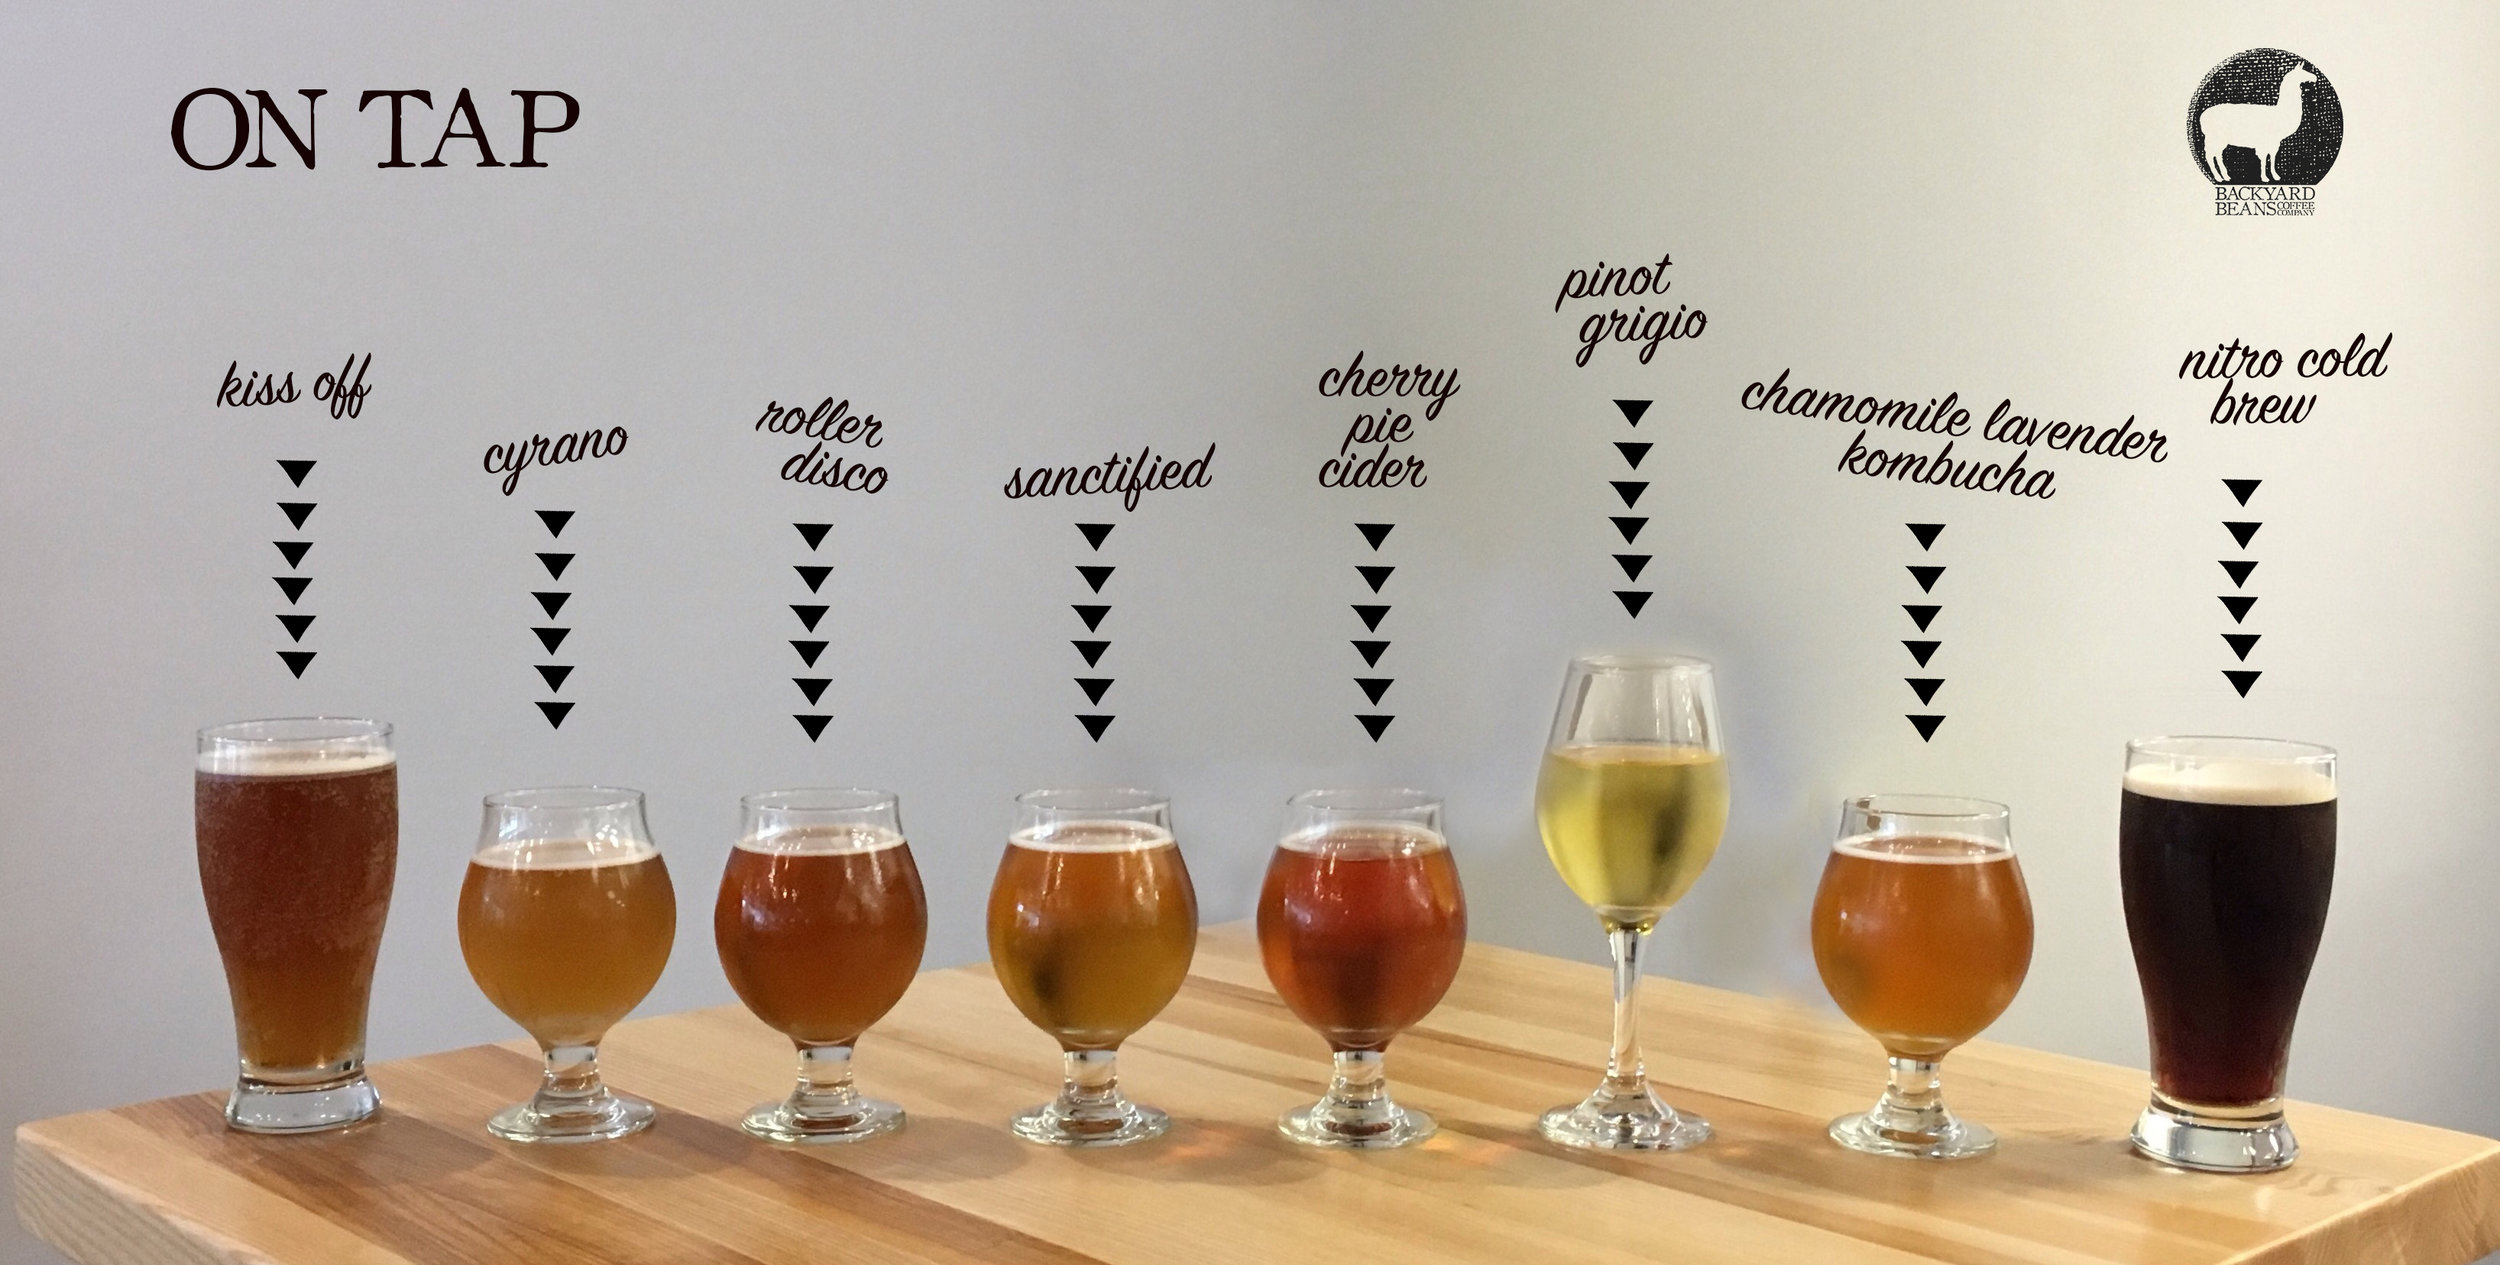 *beer and cocktail selections change regularly, check in with our bartender for what's on tap!